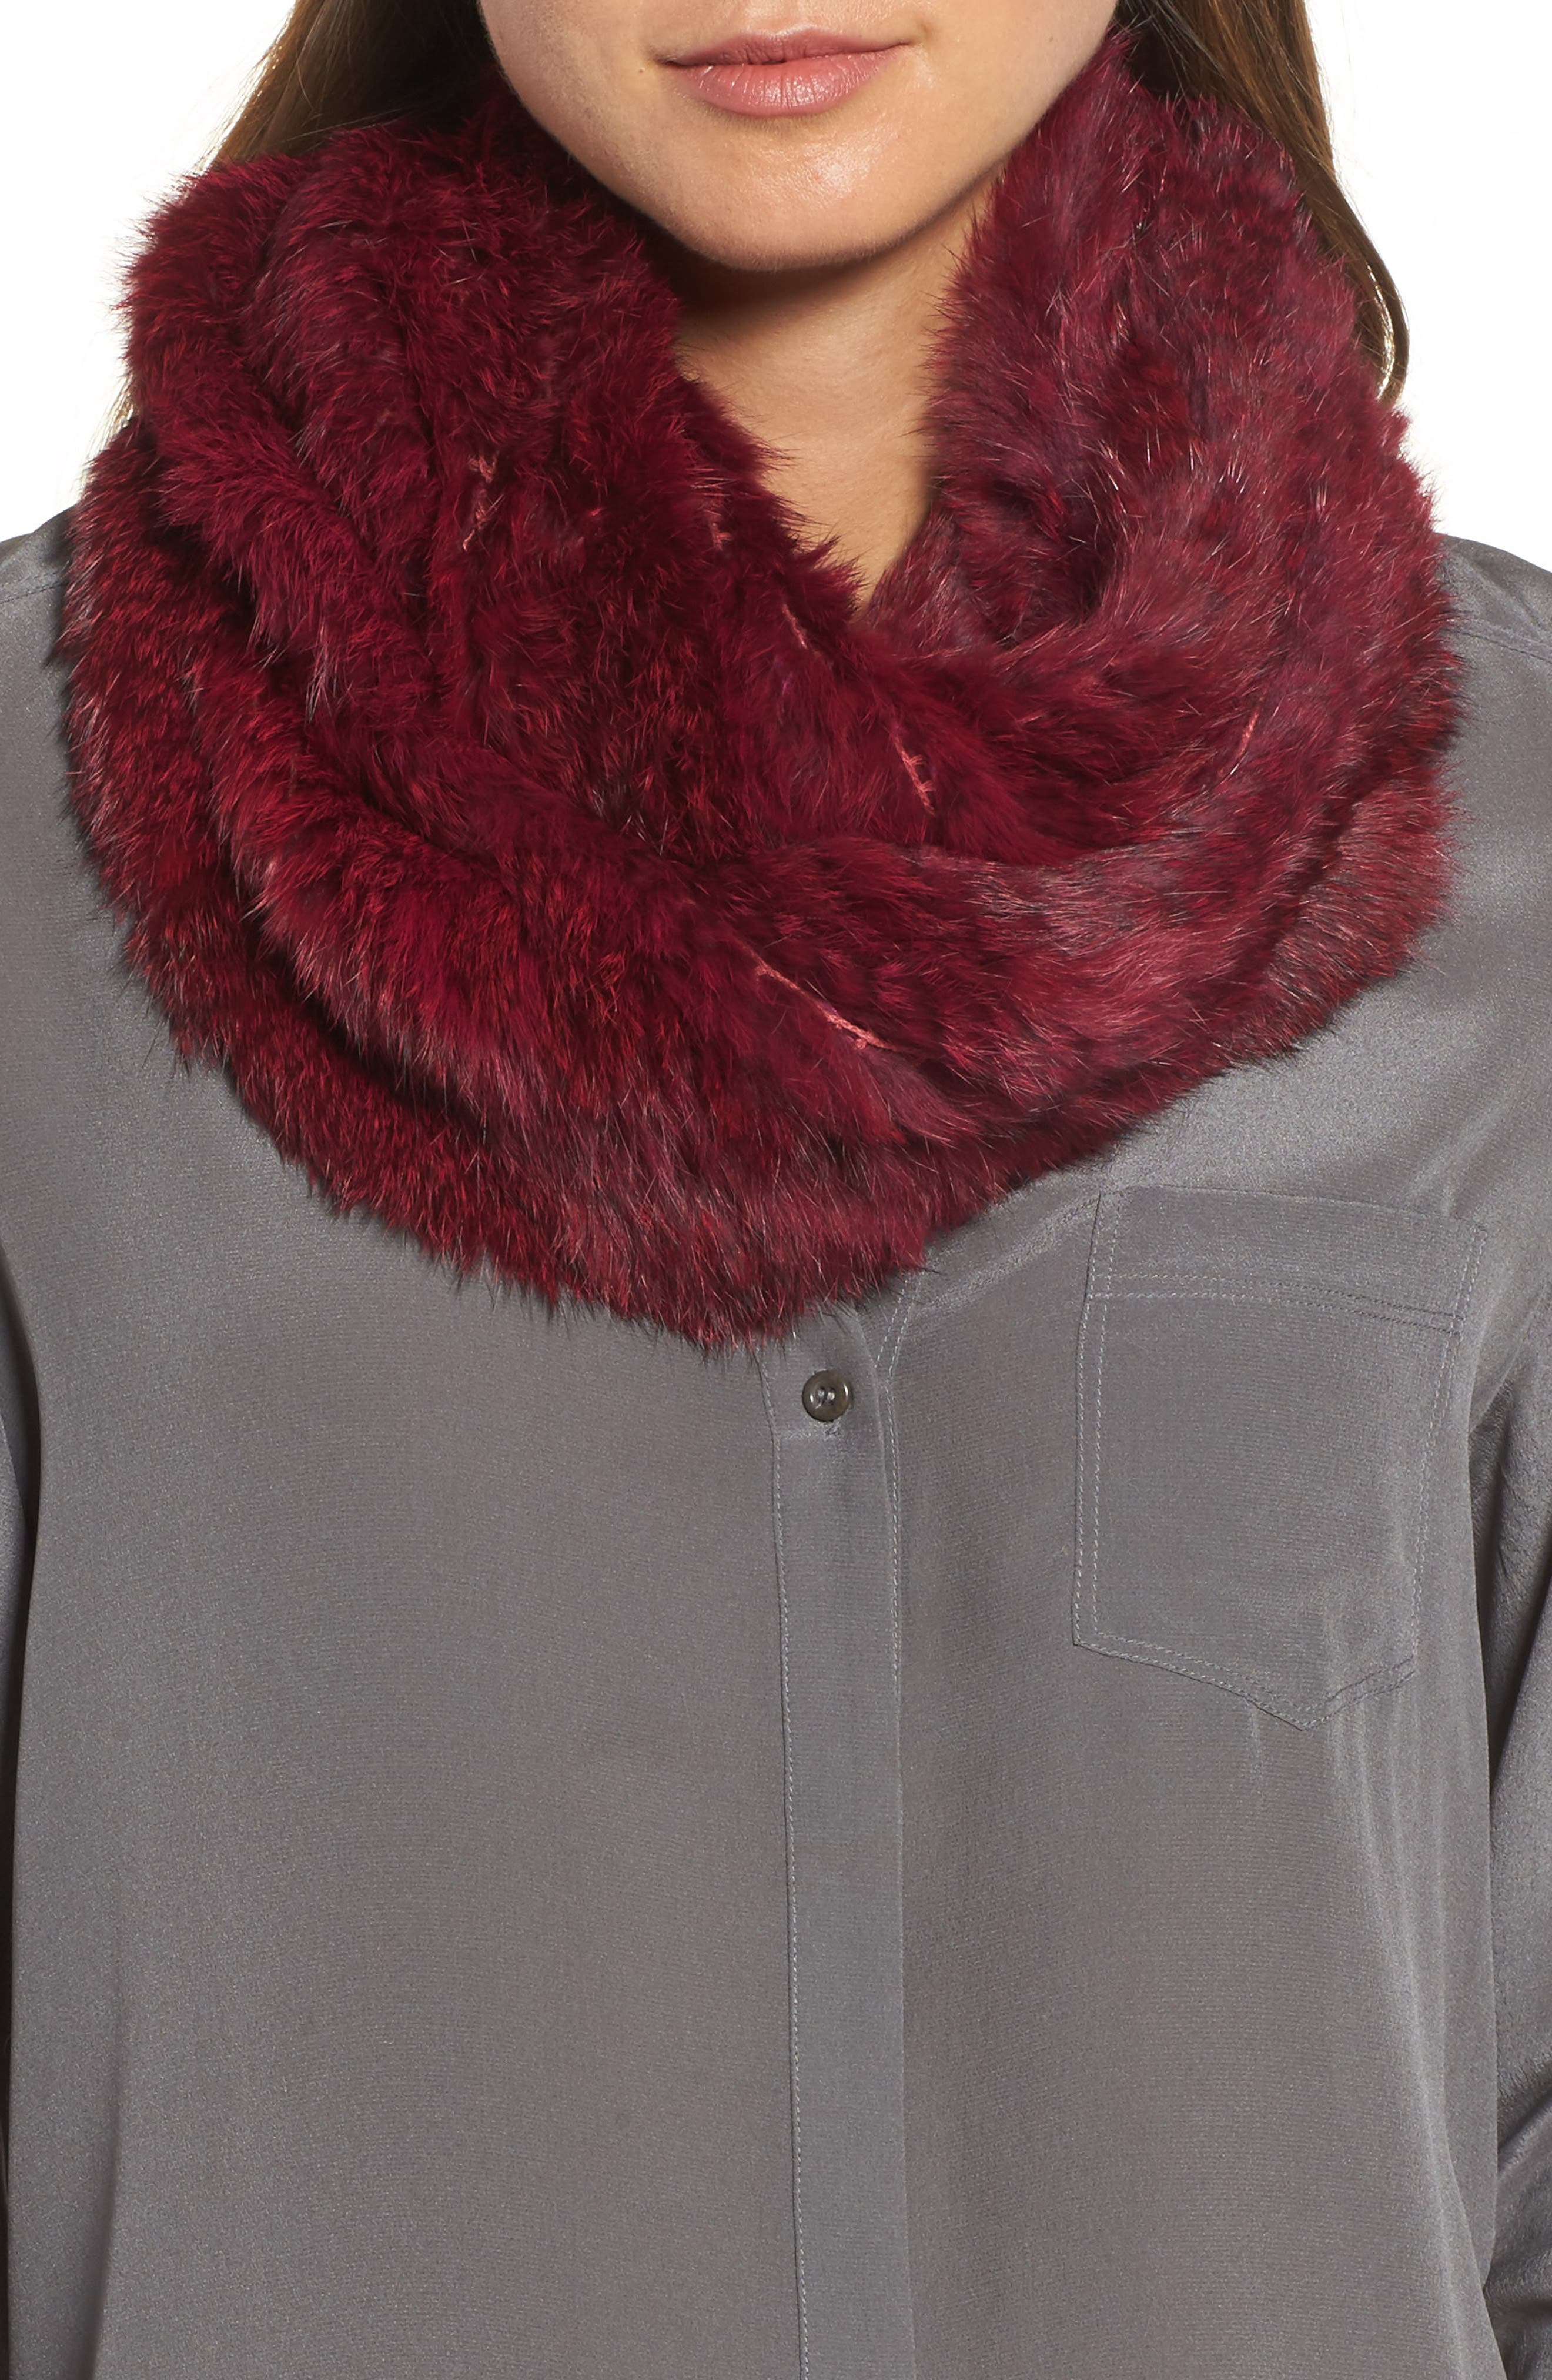 Overdyed Genuine Rabbit Fur Infinity Scarf,                         Main,                         color, 930